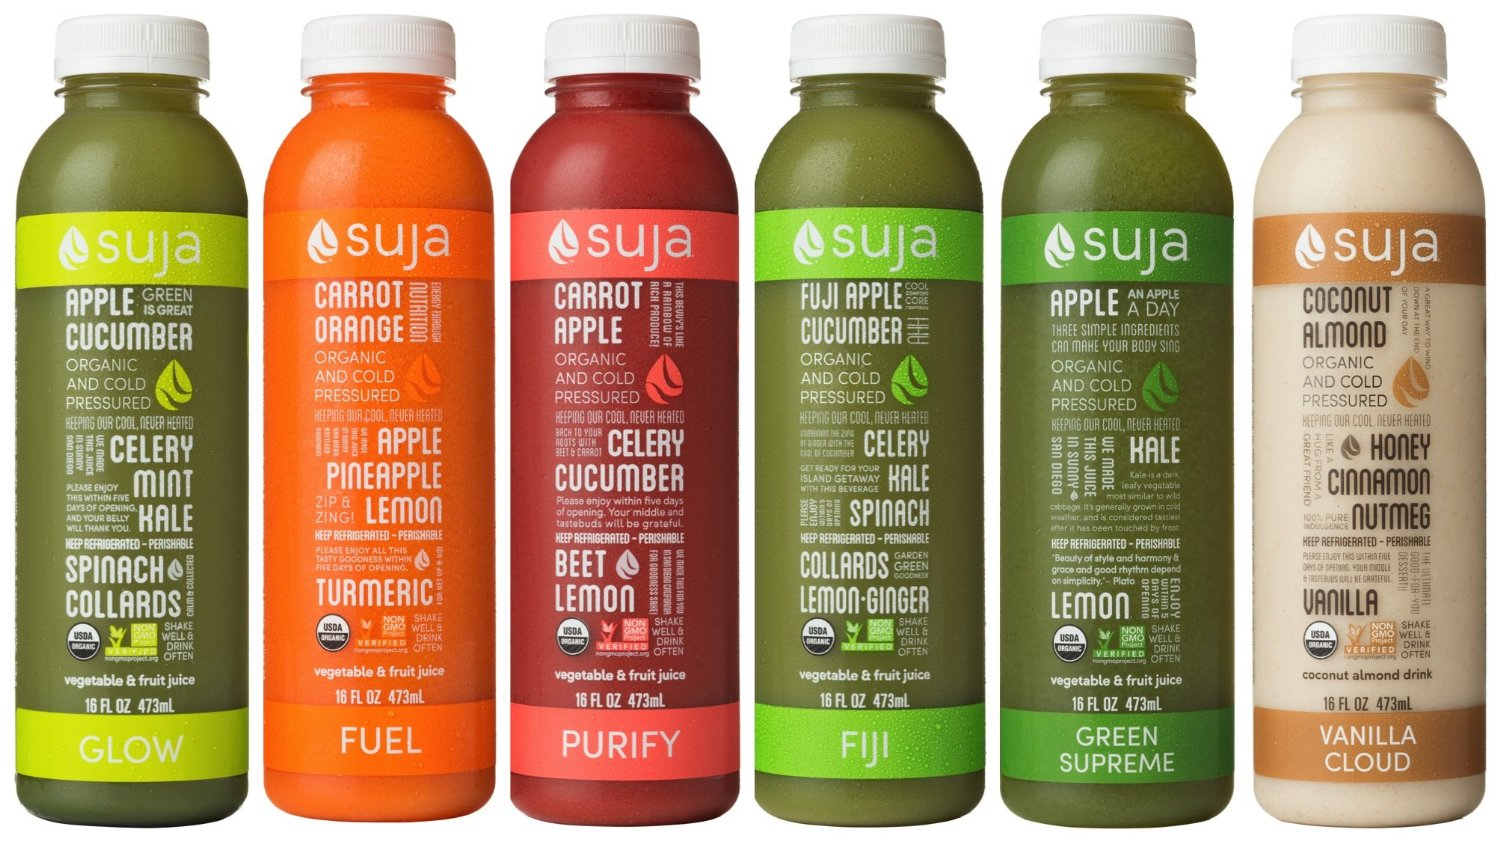 Education not medication cold pressed juice i have found suja cold pressed juice at target for 3 malvernweather Gallery